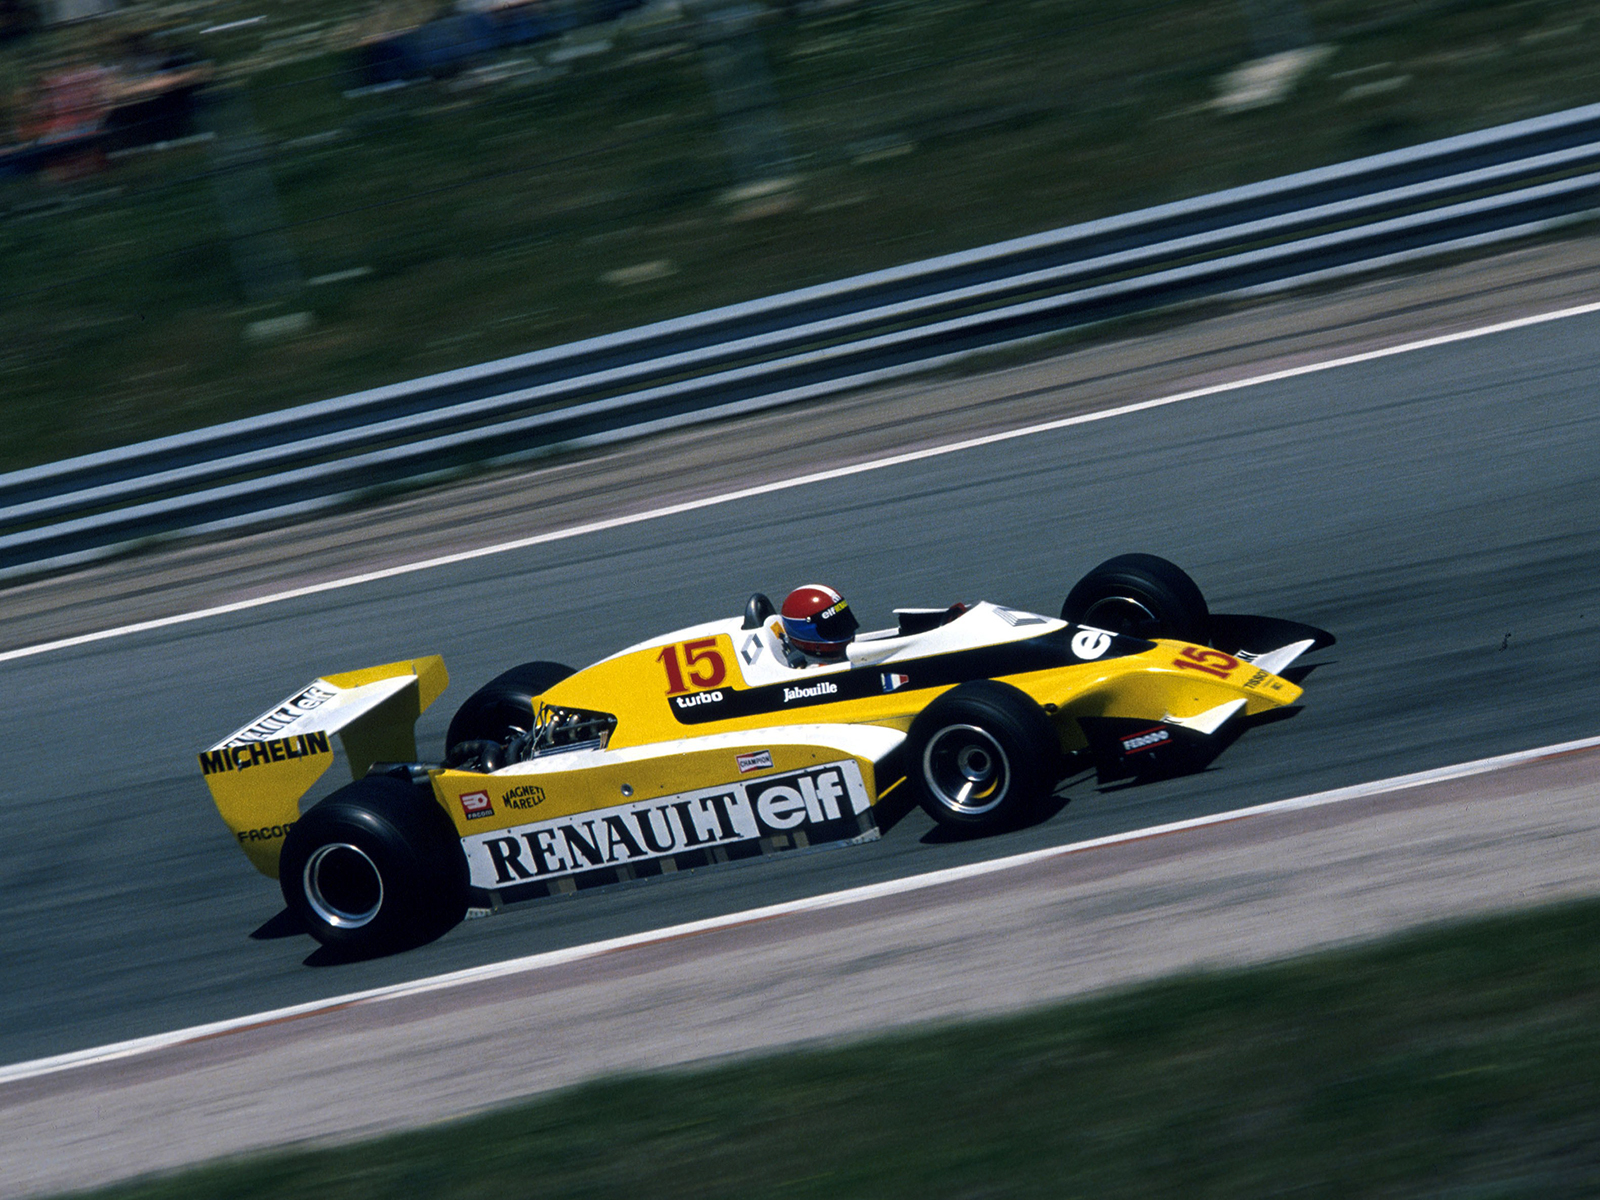 Renault rs10 photo - 7